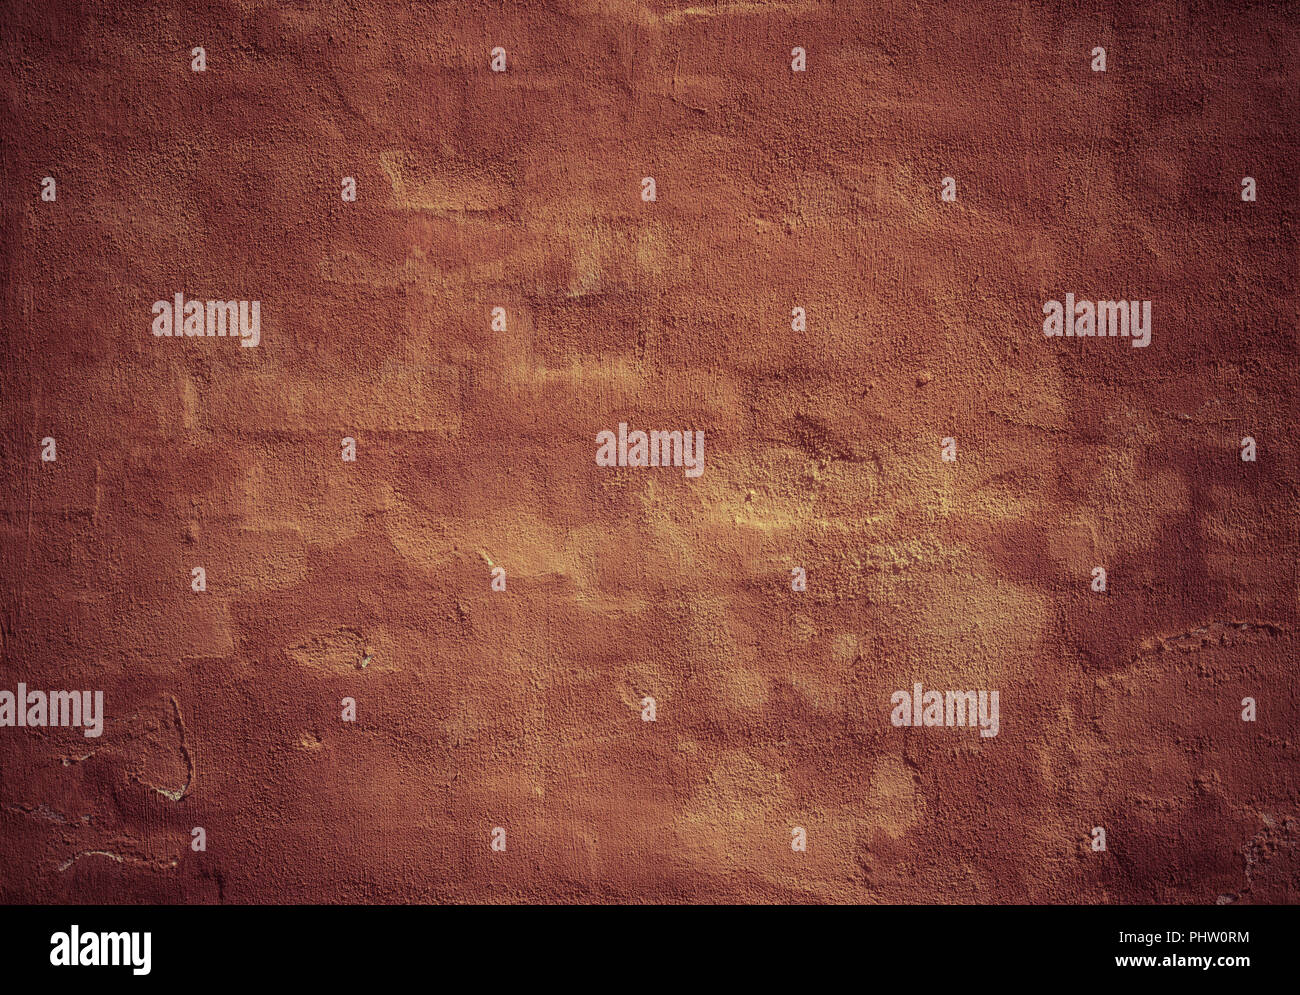 Grunge textured wall. High resolution vintage background. - Stock Image